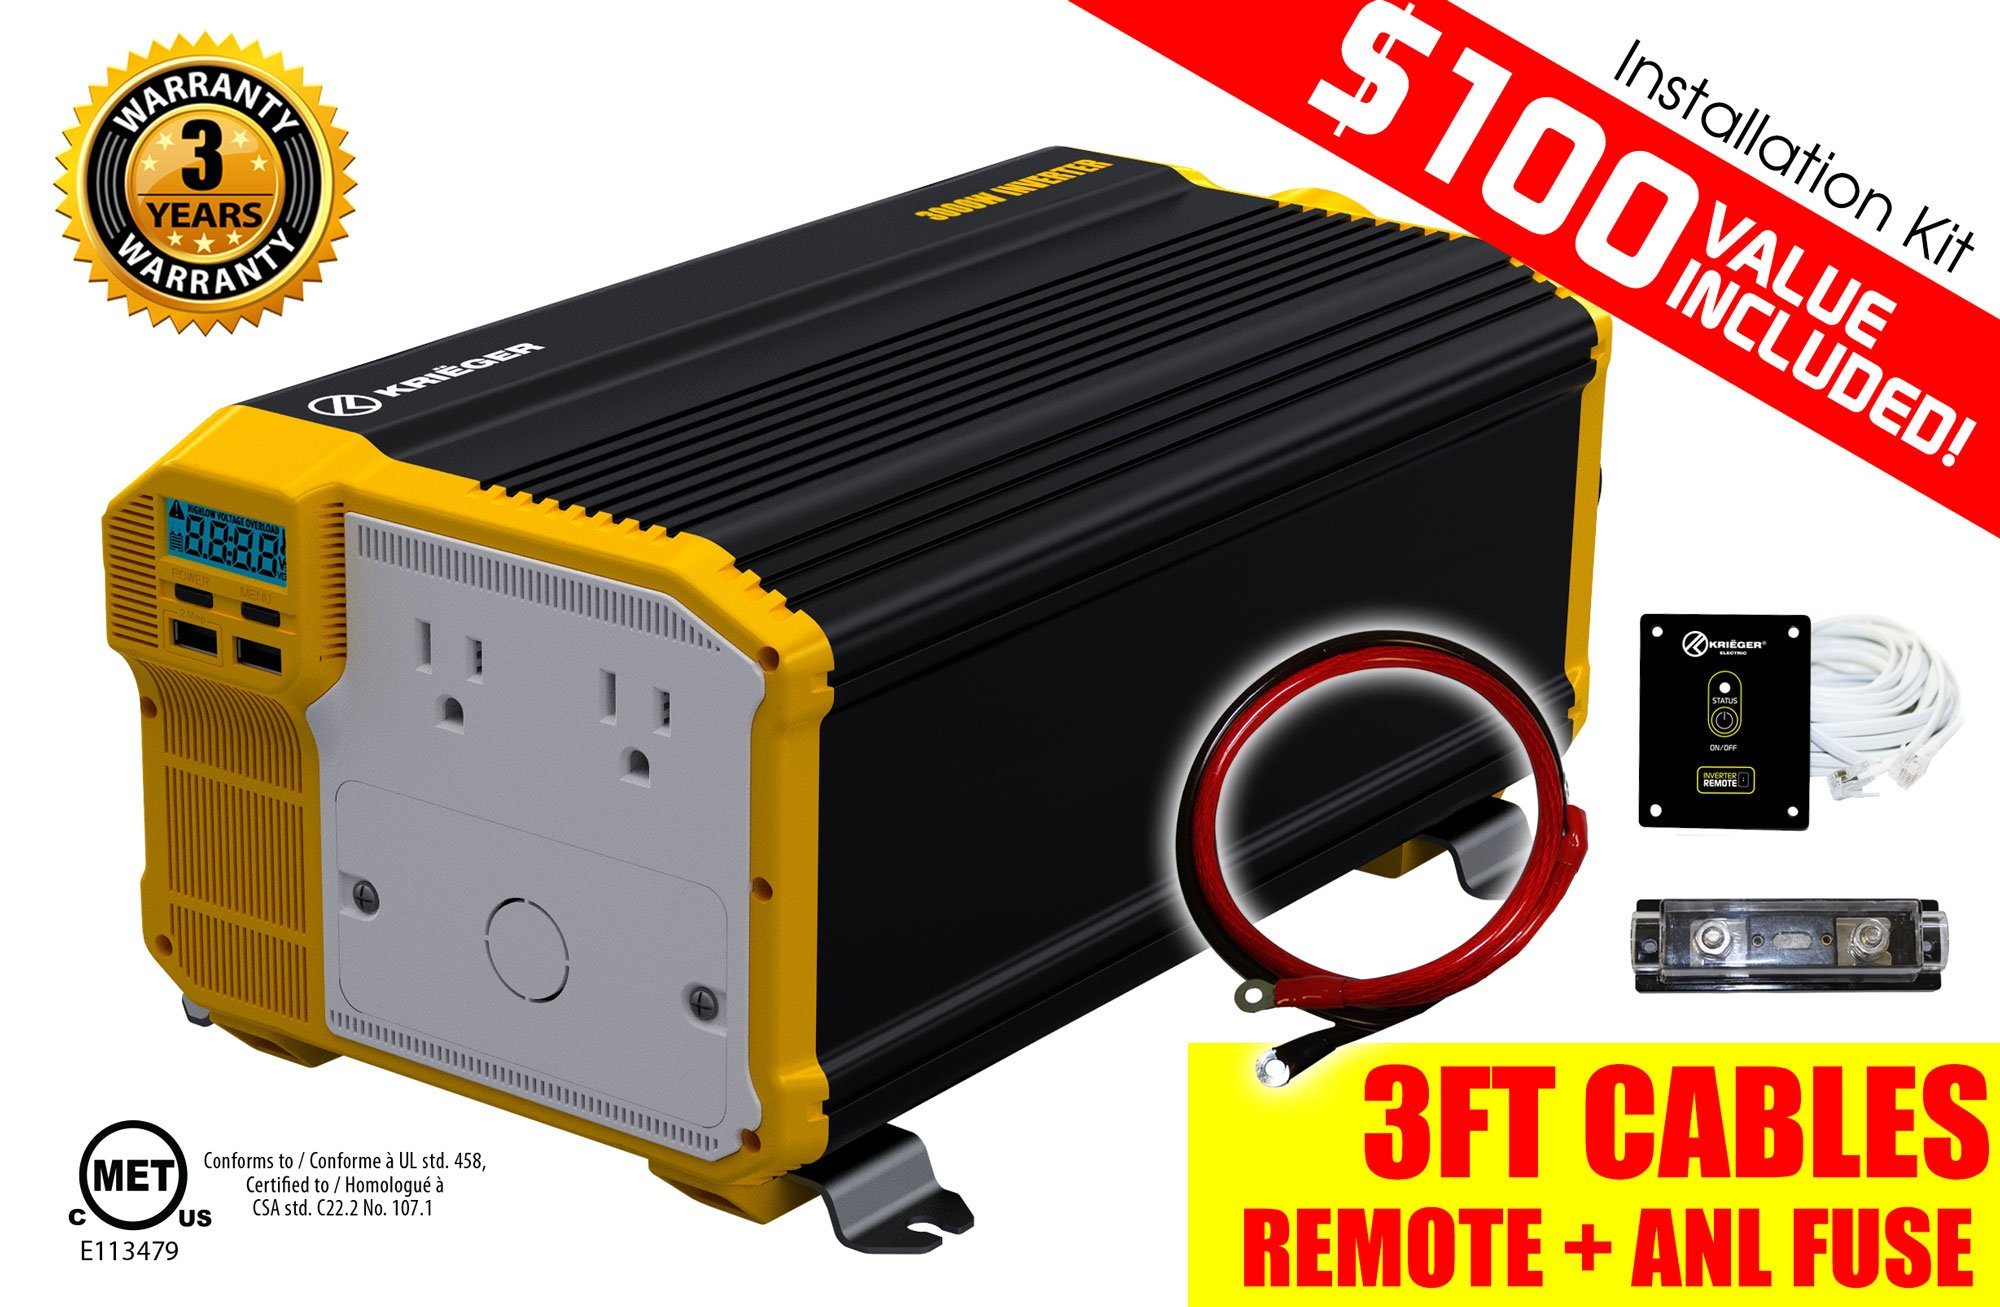 KRIËGER 3000 Watt 12V Power Inverter, Dual 110V AC outlets, Automotive back up power supply for refrigerators, microwaves, coffee makers, Chainsaws, vacuums, power tools. MET approved to UL and CSA